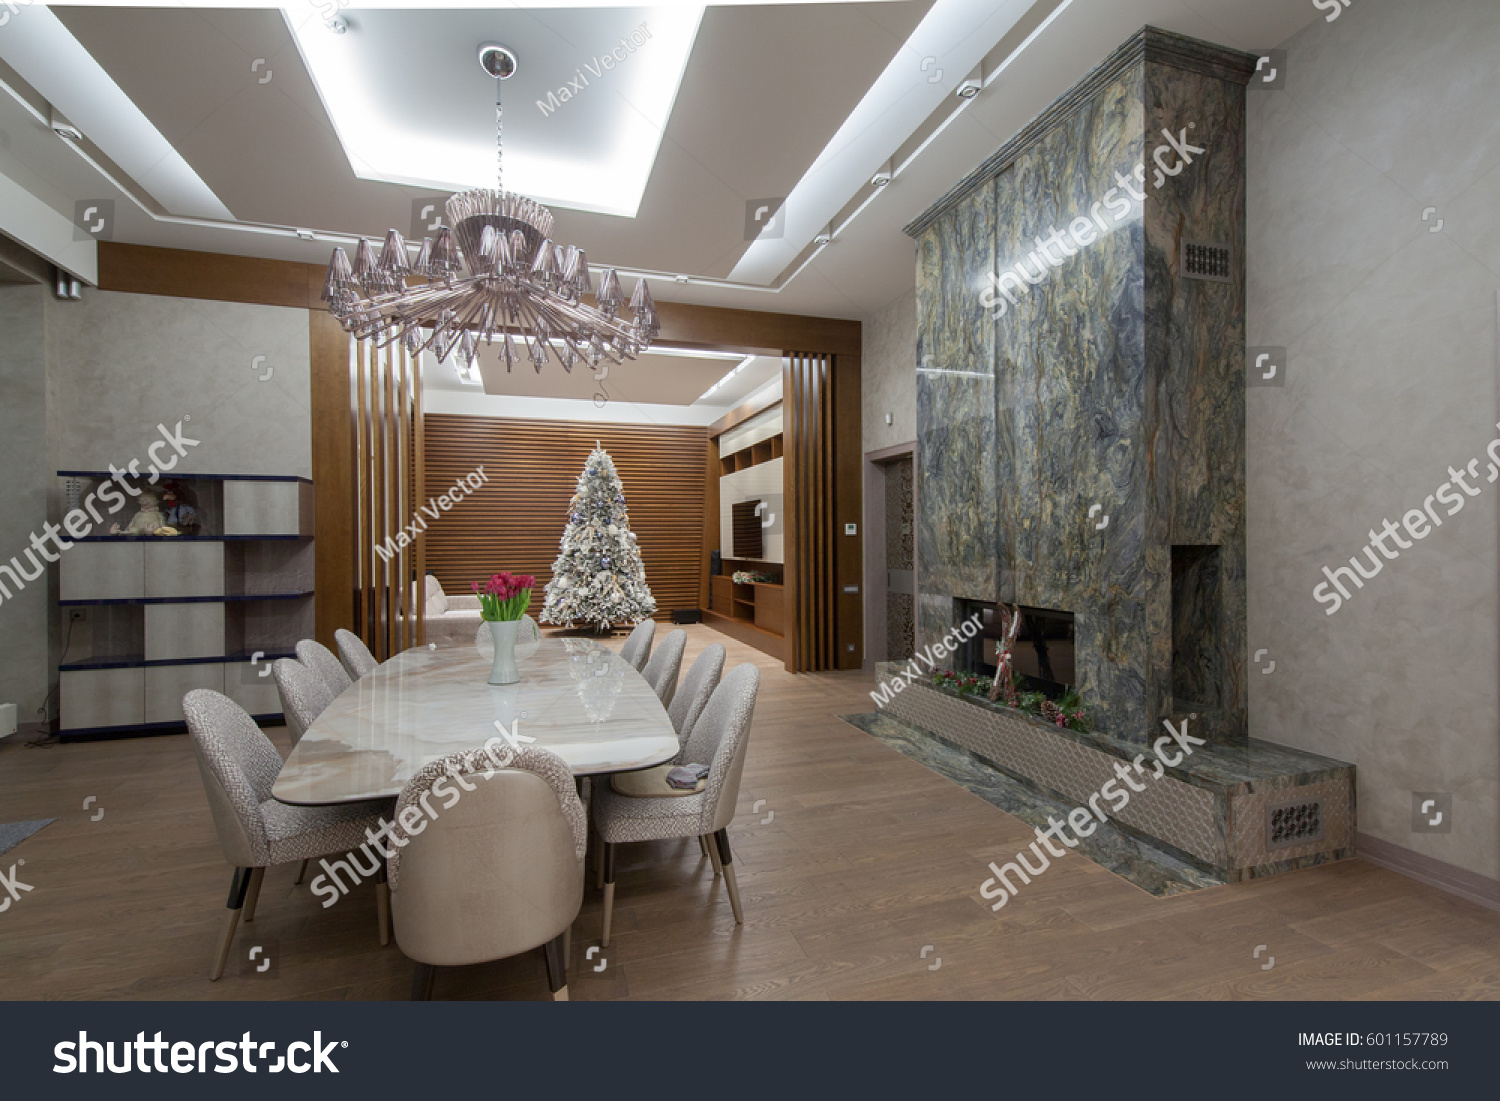 Luxurious Dining Room Large Dining Table Stock Photo Edit Now 601157789